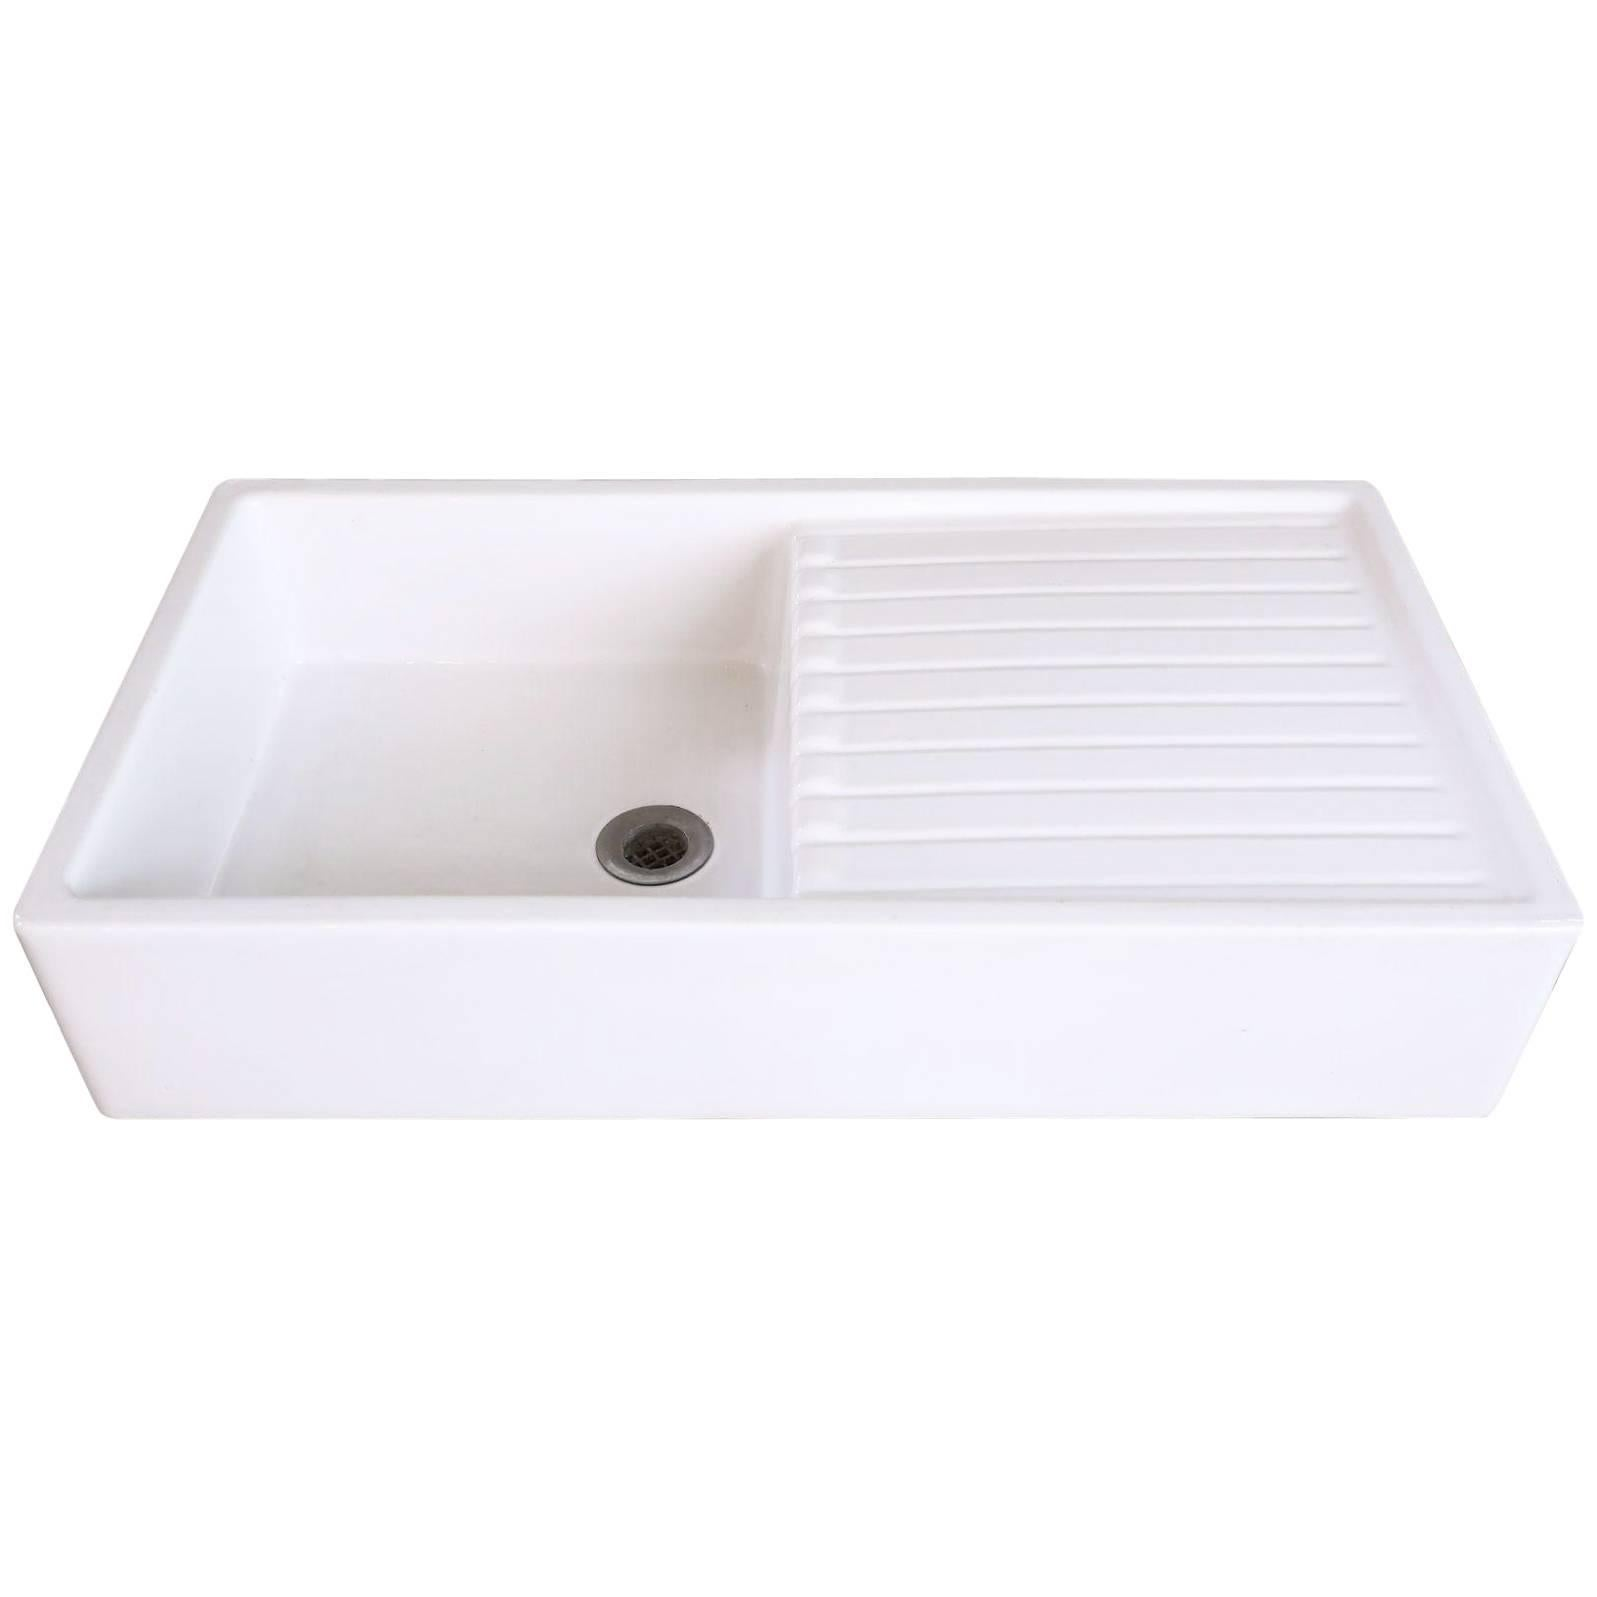 Large Porcelain Vintage Farm Sink With Drainage Board From Warneton, Circa  1920